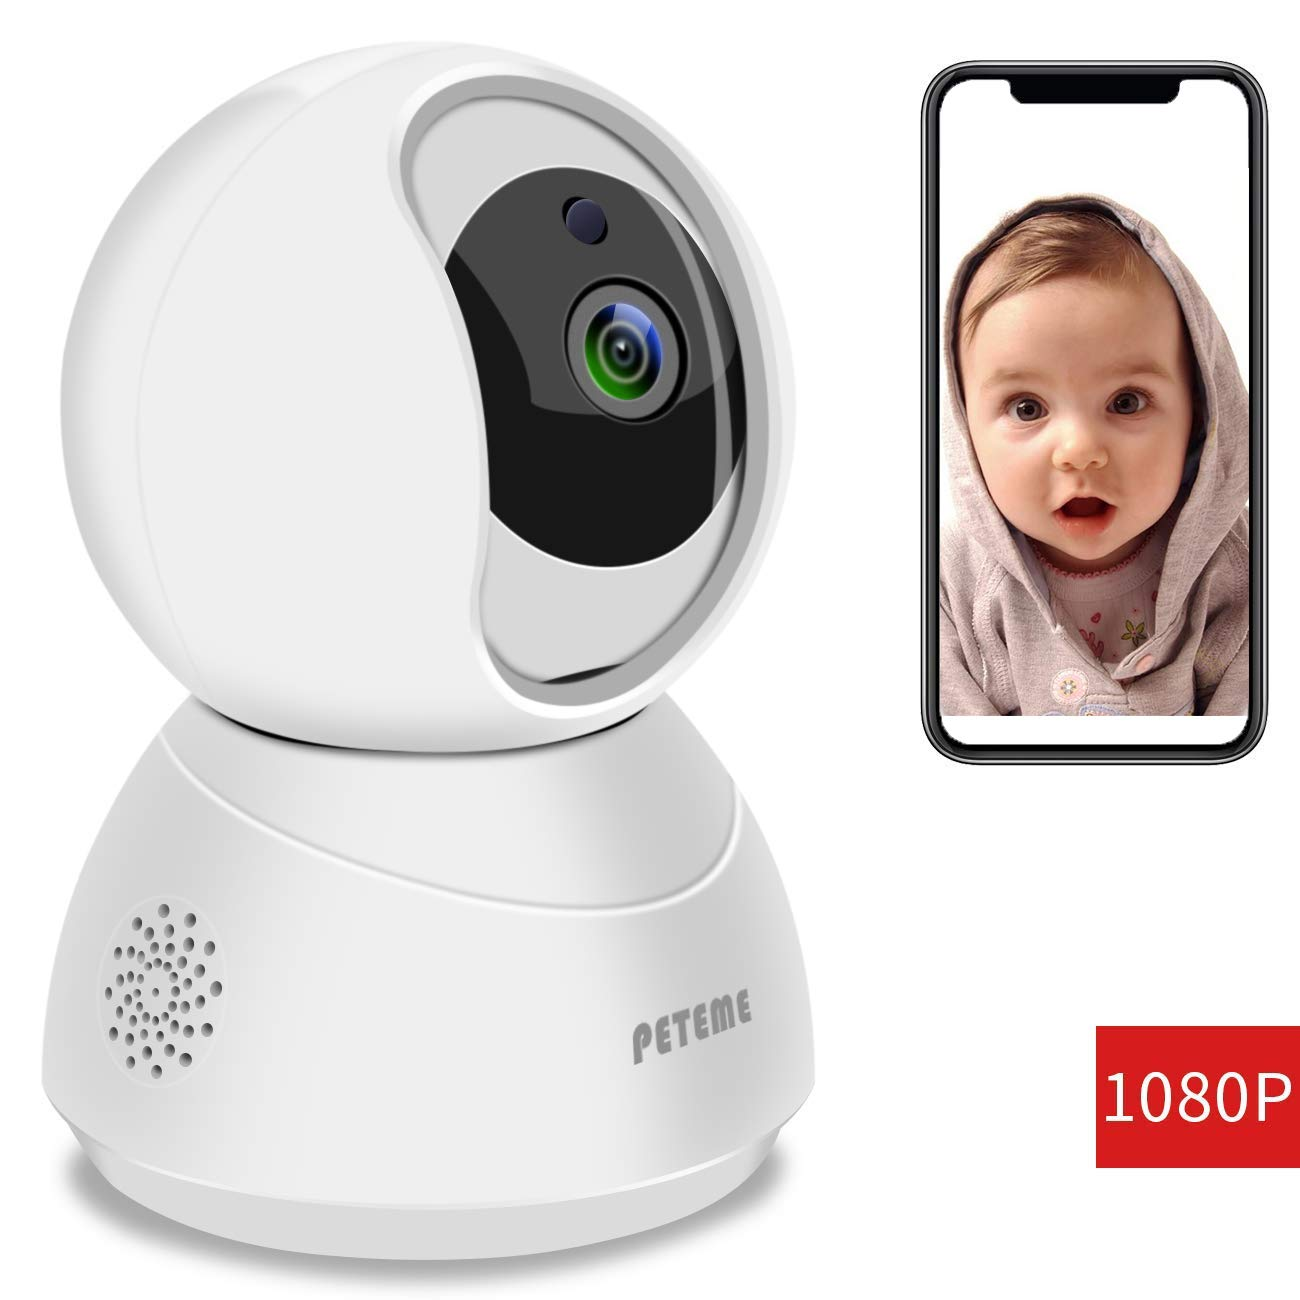 Peteme Baby Monitor 1080P FHD Home WiFi Security Camera Sound/Motion Detection with Night Vision 2-Way Audio Cloud Service Available Monitor Baby/Elder/Pet Compatible with iOS/Android by Peteme